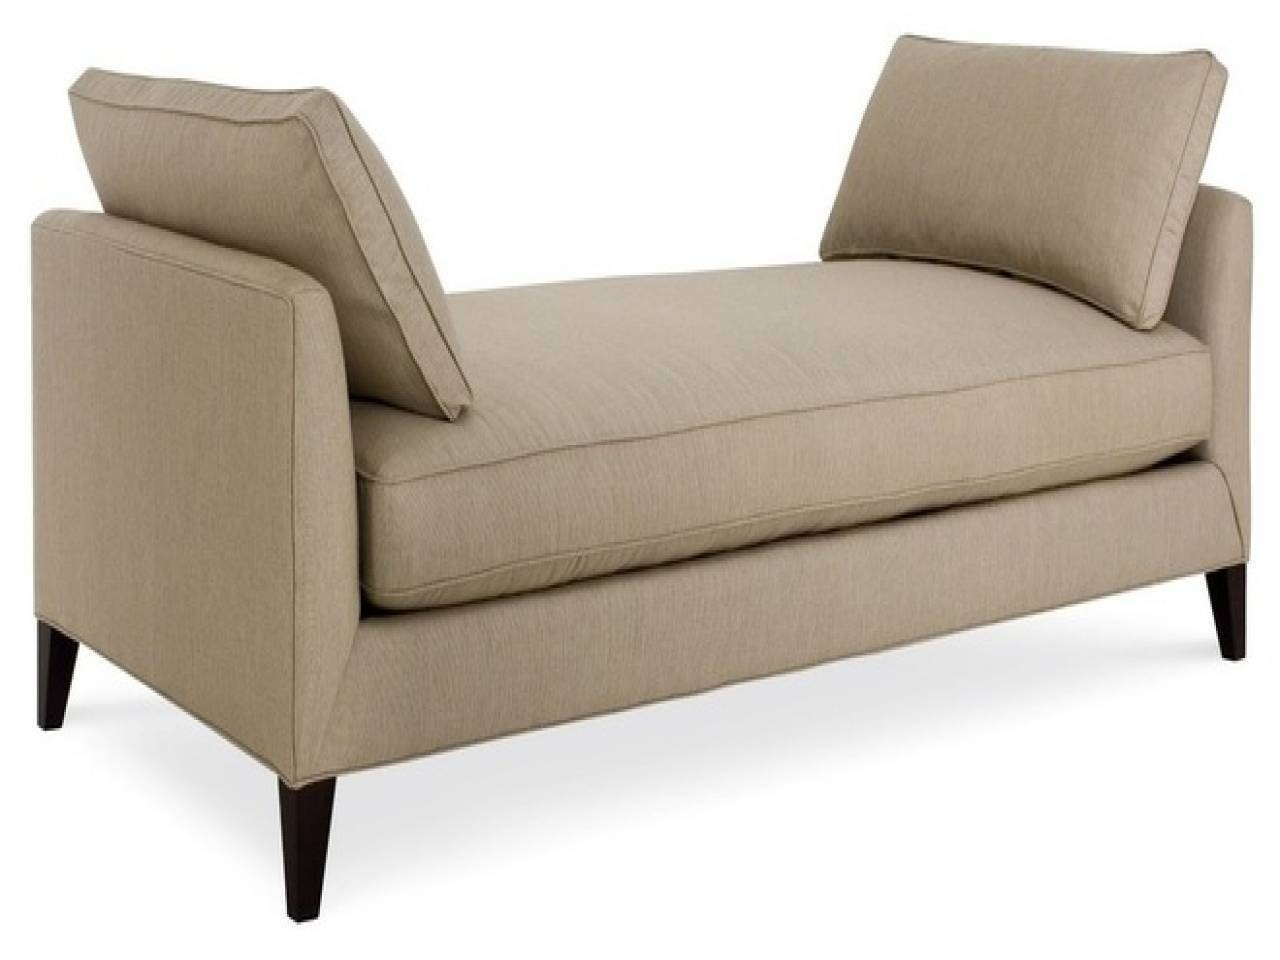 Appealing Backless Daybed Sofa Pics Ideas – Surripui For Backless Chaise Sofa (View 23 of 30)